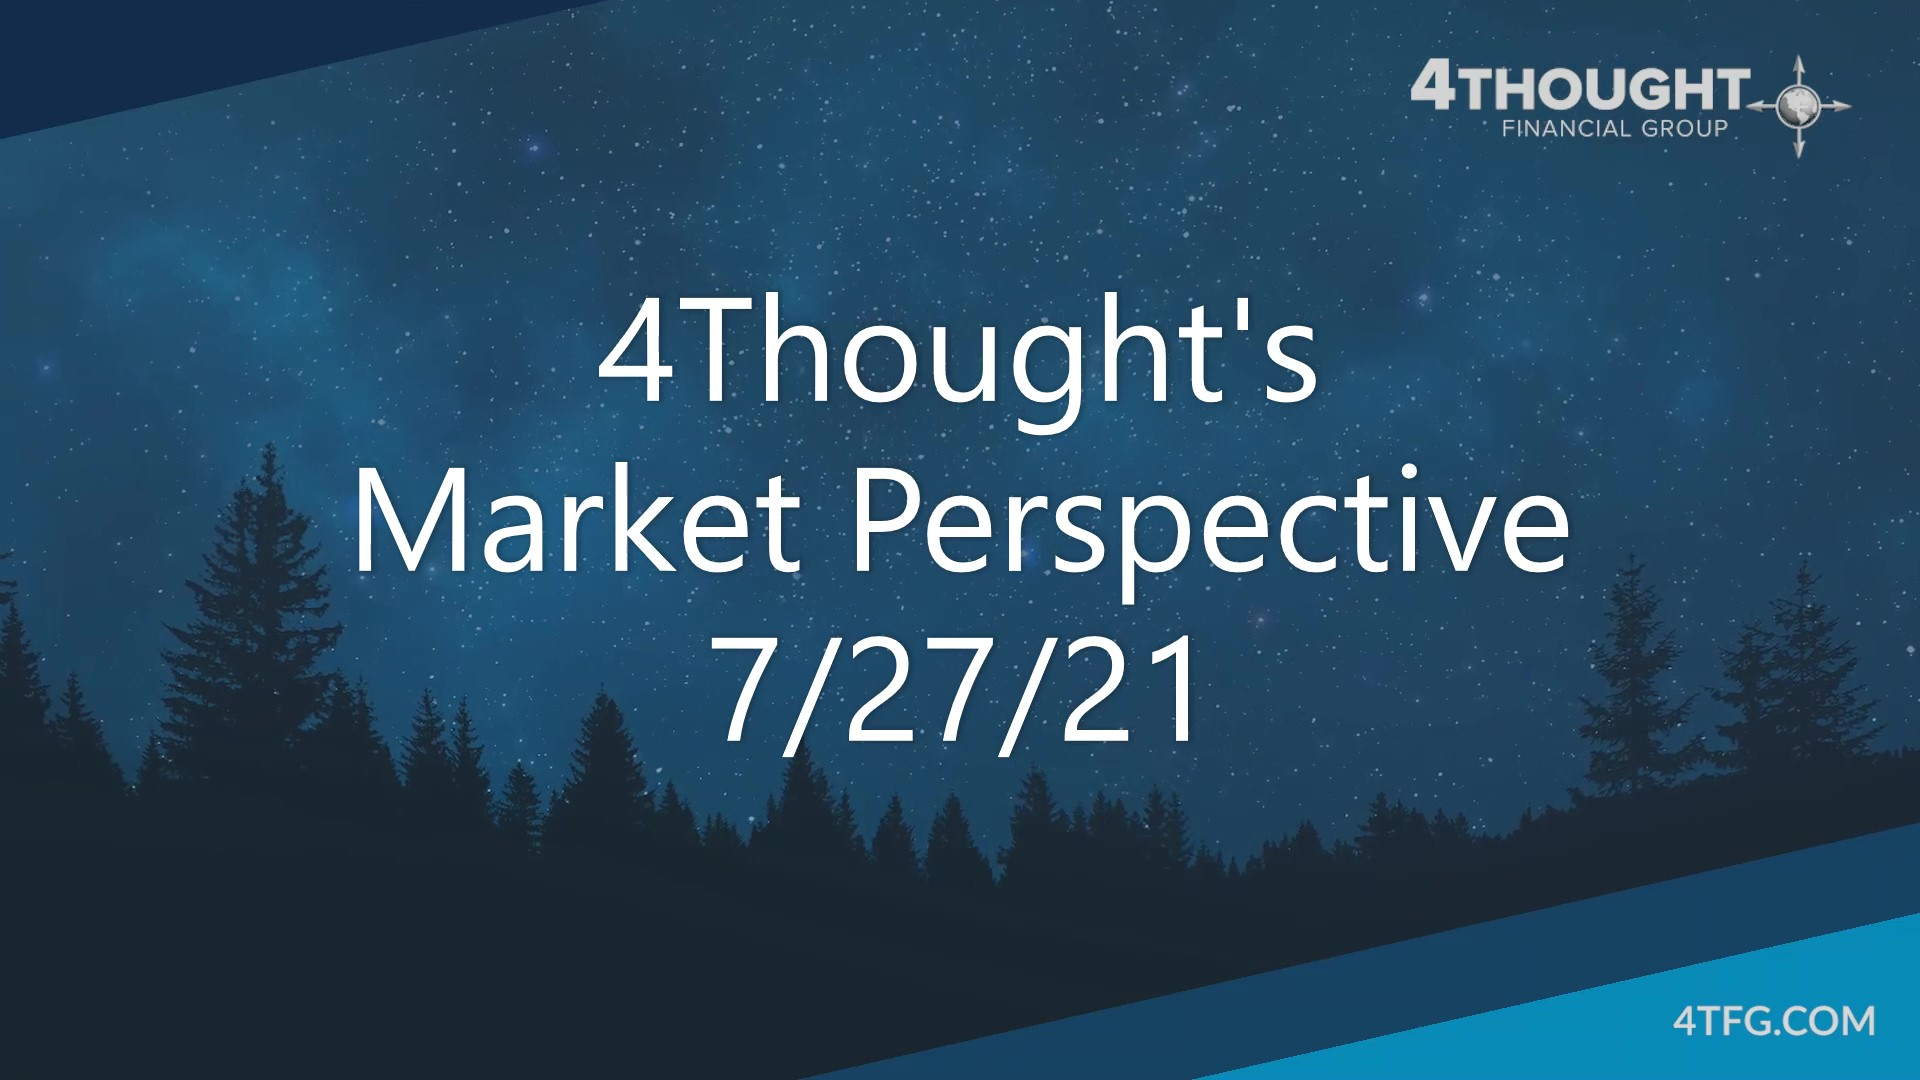 4Thought's Market Perspective 7-27-21